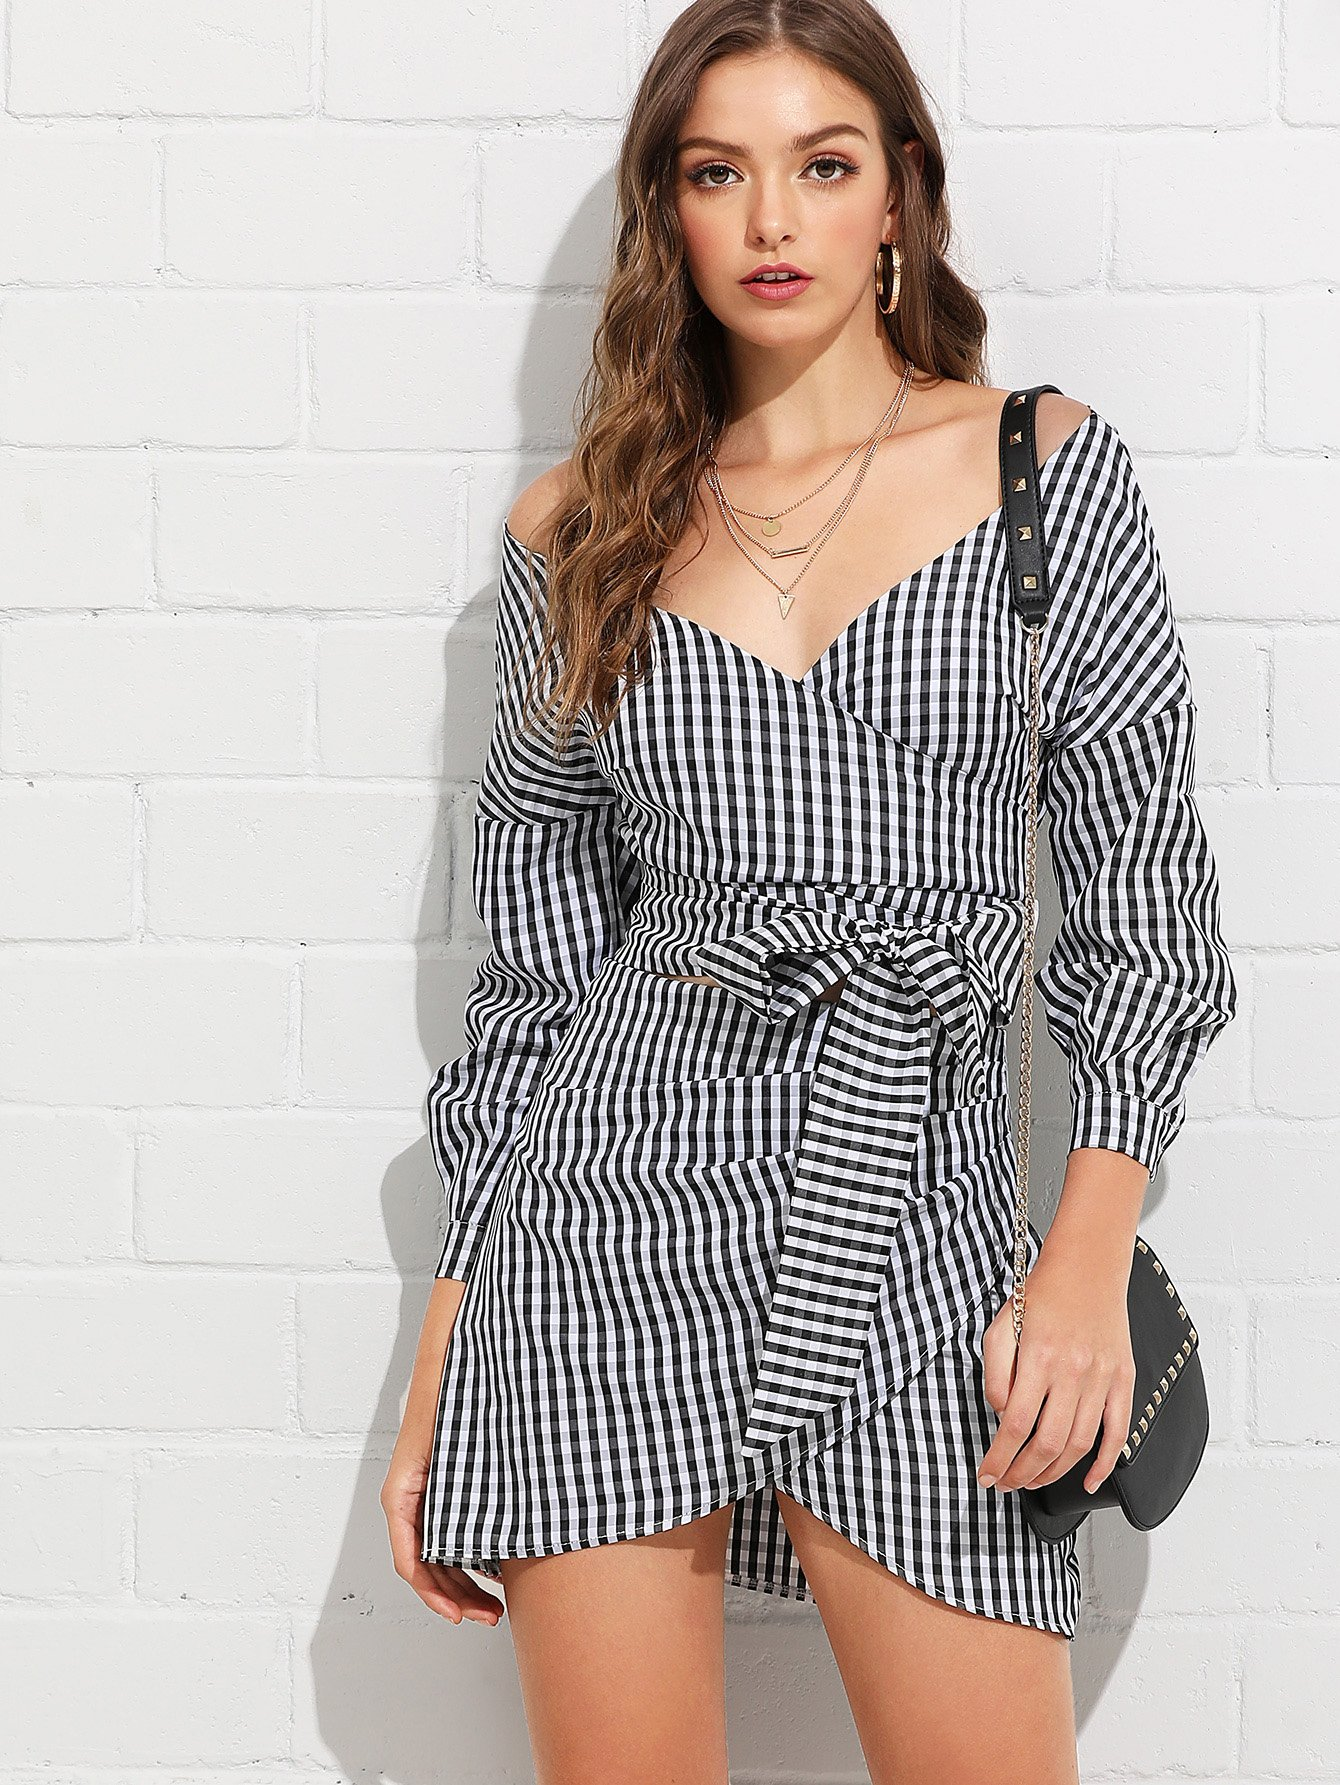 V-Neckline Knot Wrap Plaid Top With Skirt wrap knot swimsuit